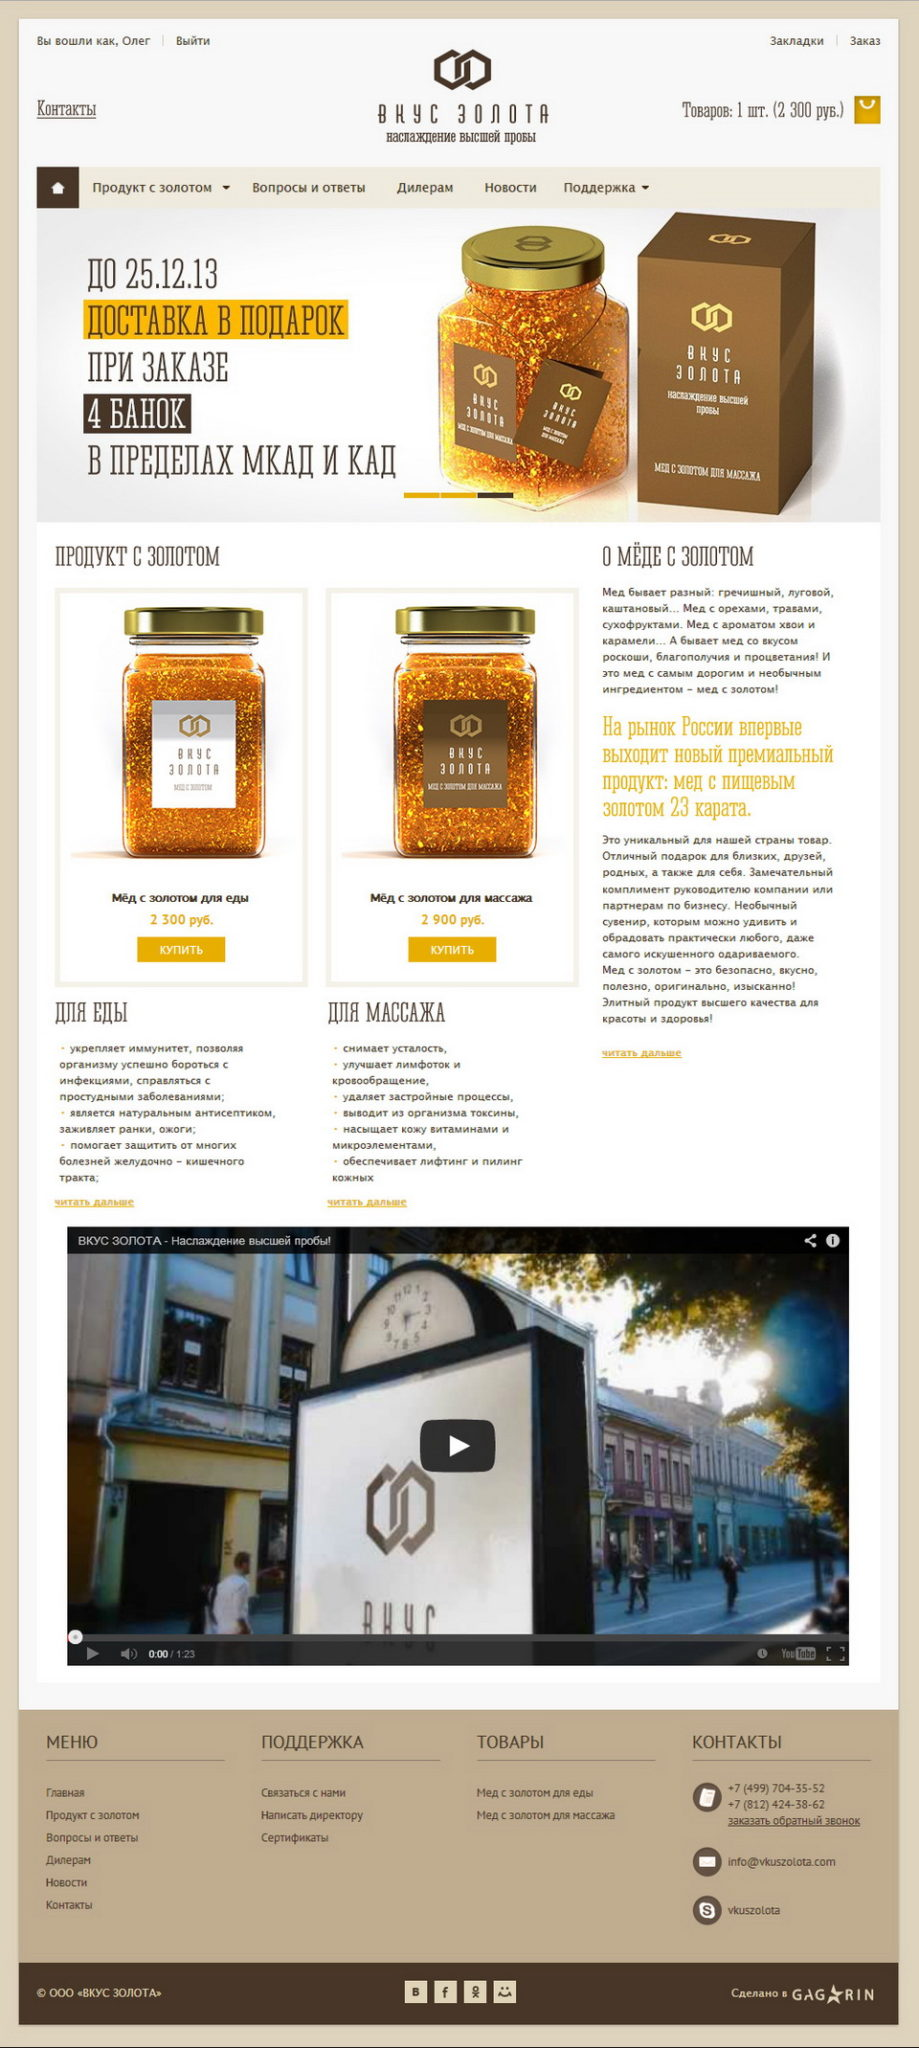 Internet Shop Taste of Gold, adaptieve ontwerp van de site